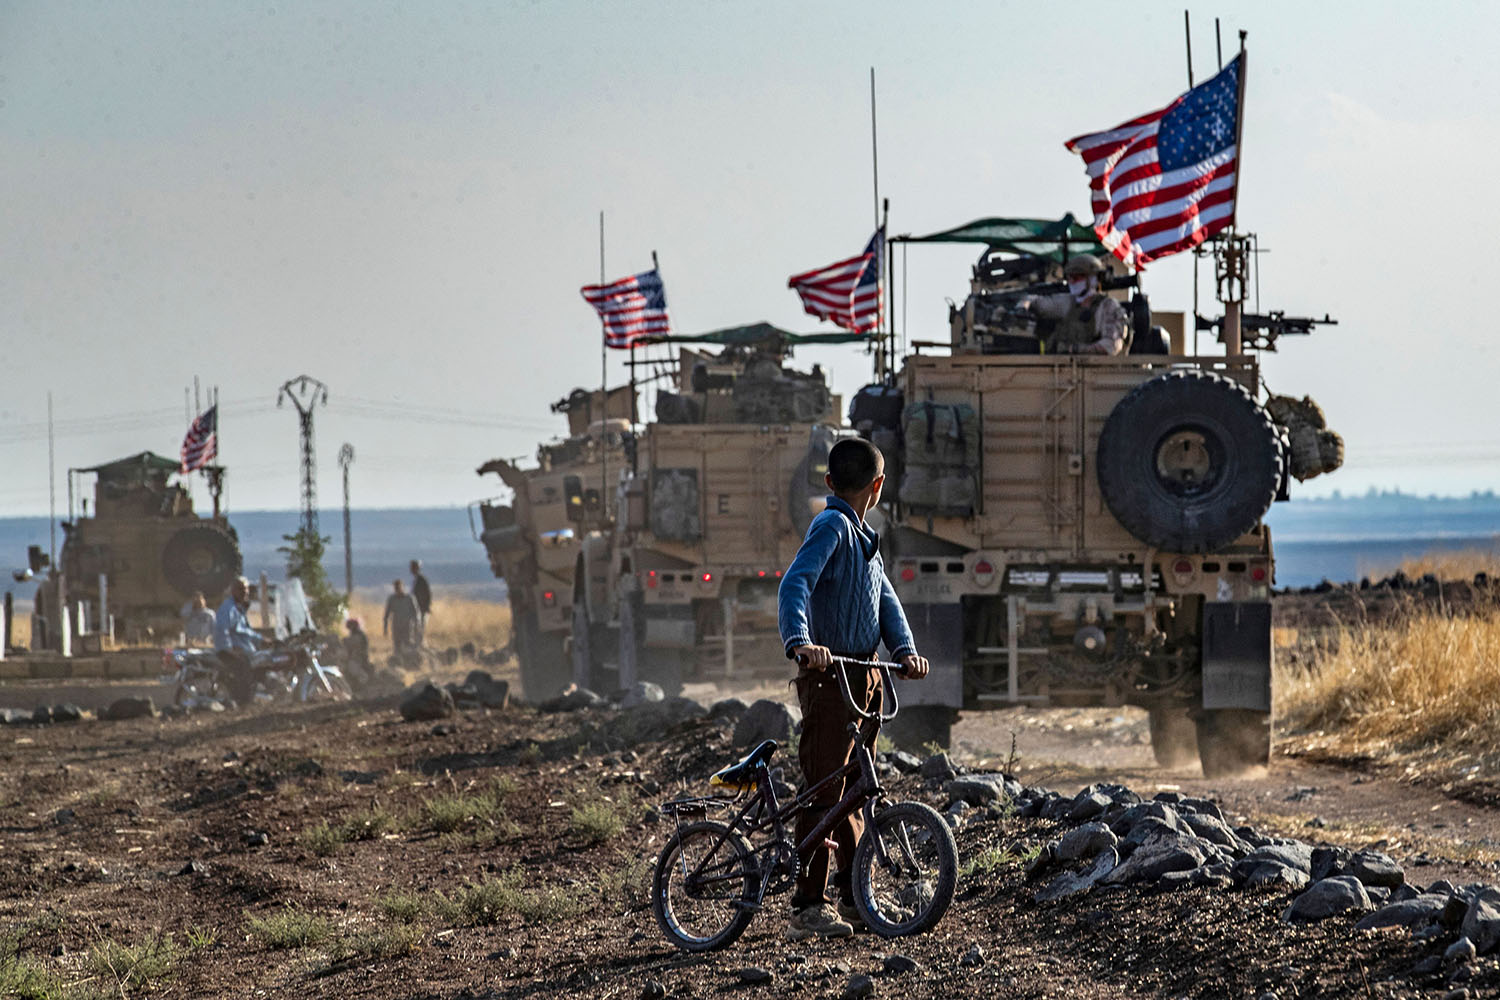 A Syrian boy on his bicycle looks at a convoy of U.S. armored vehicles patrolling fields near the northeastern town of Qahtaniyah at the border with Turkey on Oct. 31. DELIL SOULEIMAN/AFP via Getty Images